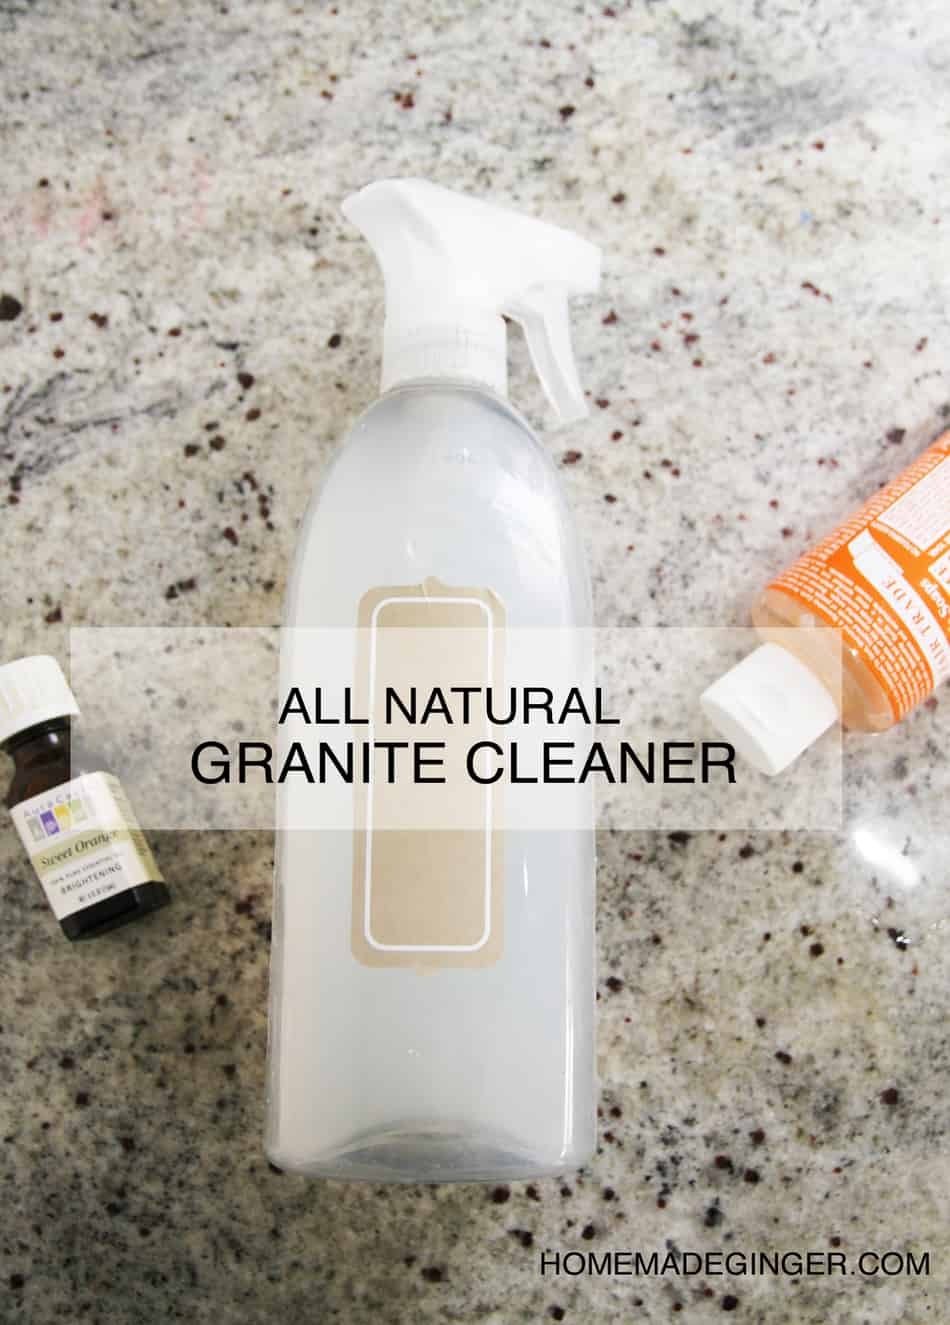 Natural Way To Clean Granite Countertops Homemade Granite Cleaner Homemade Ginger